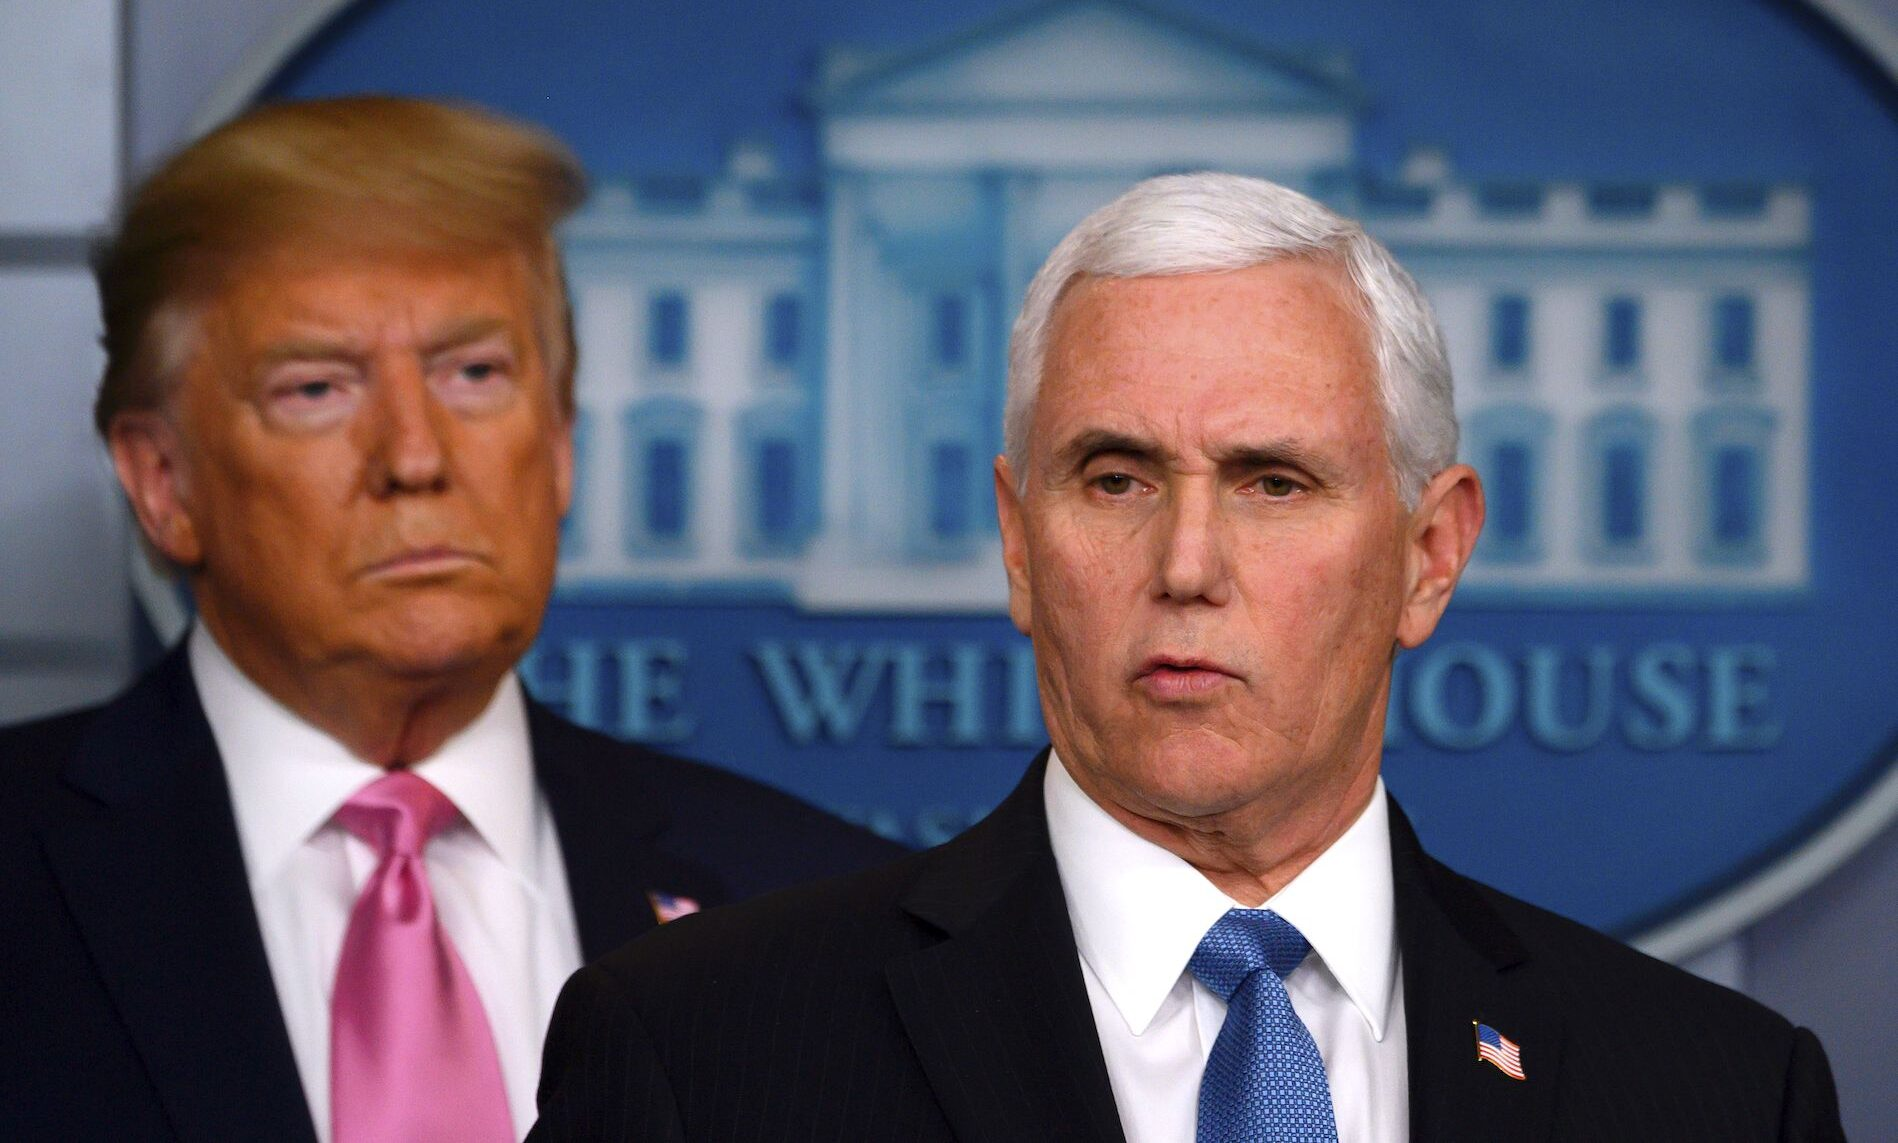 President Donald Trump (L) looks on as Vice President Mike Pence